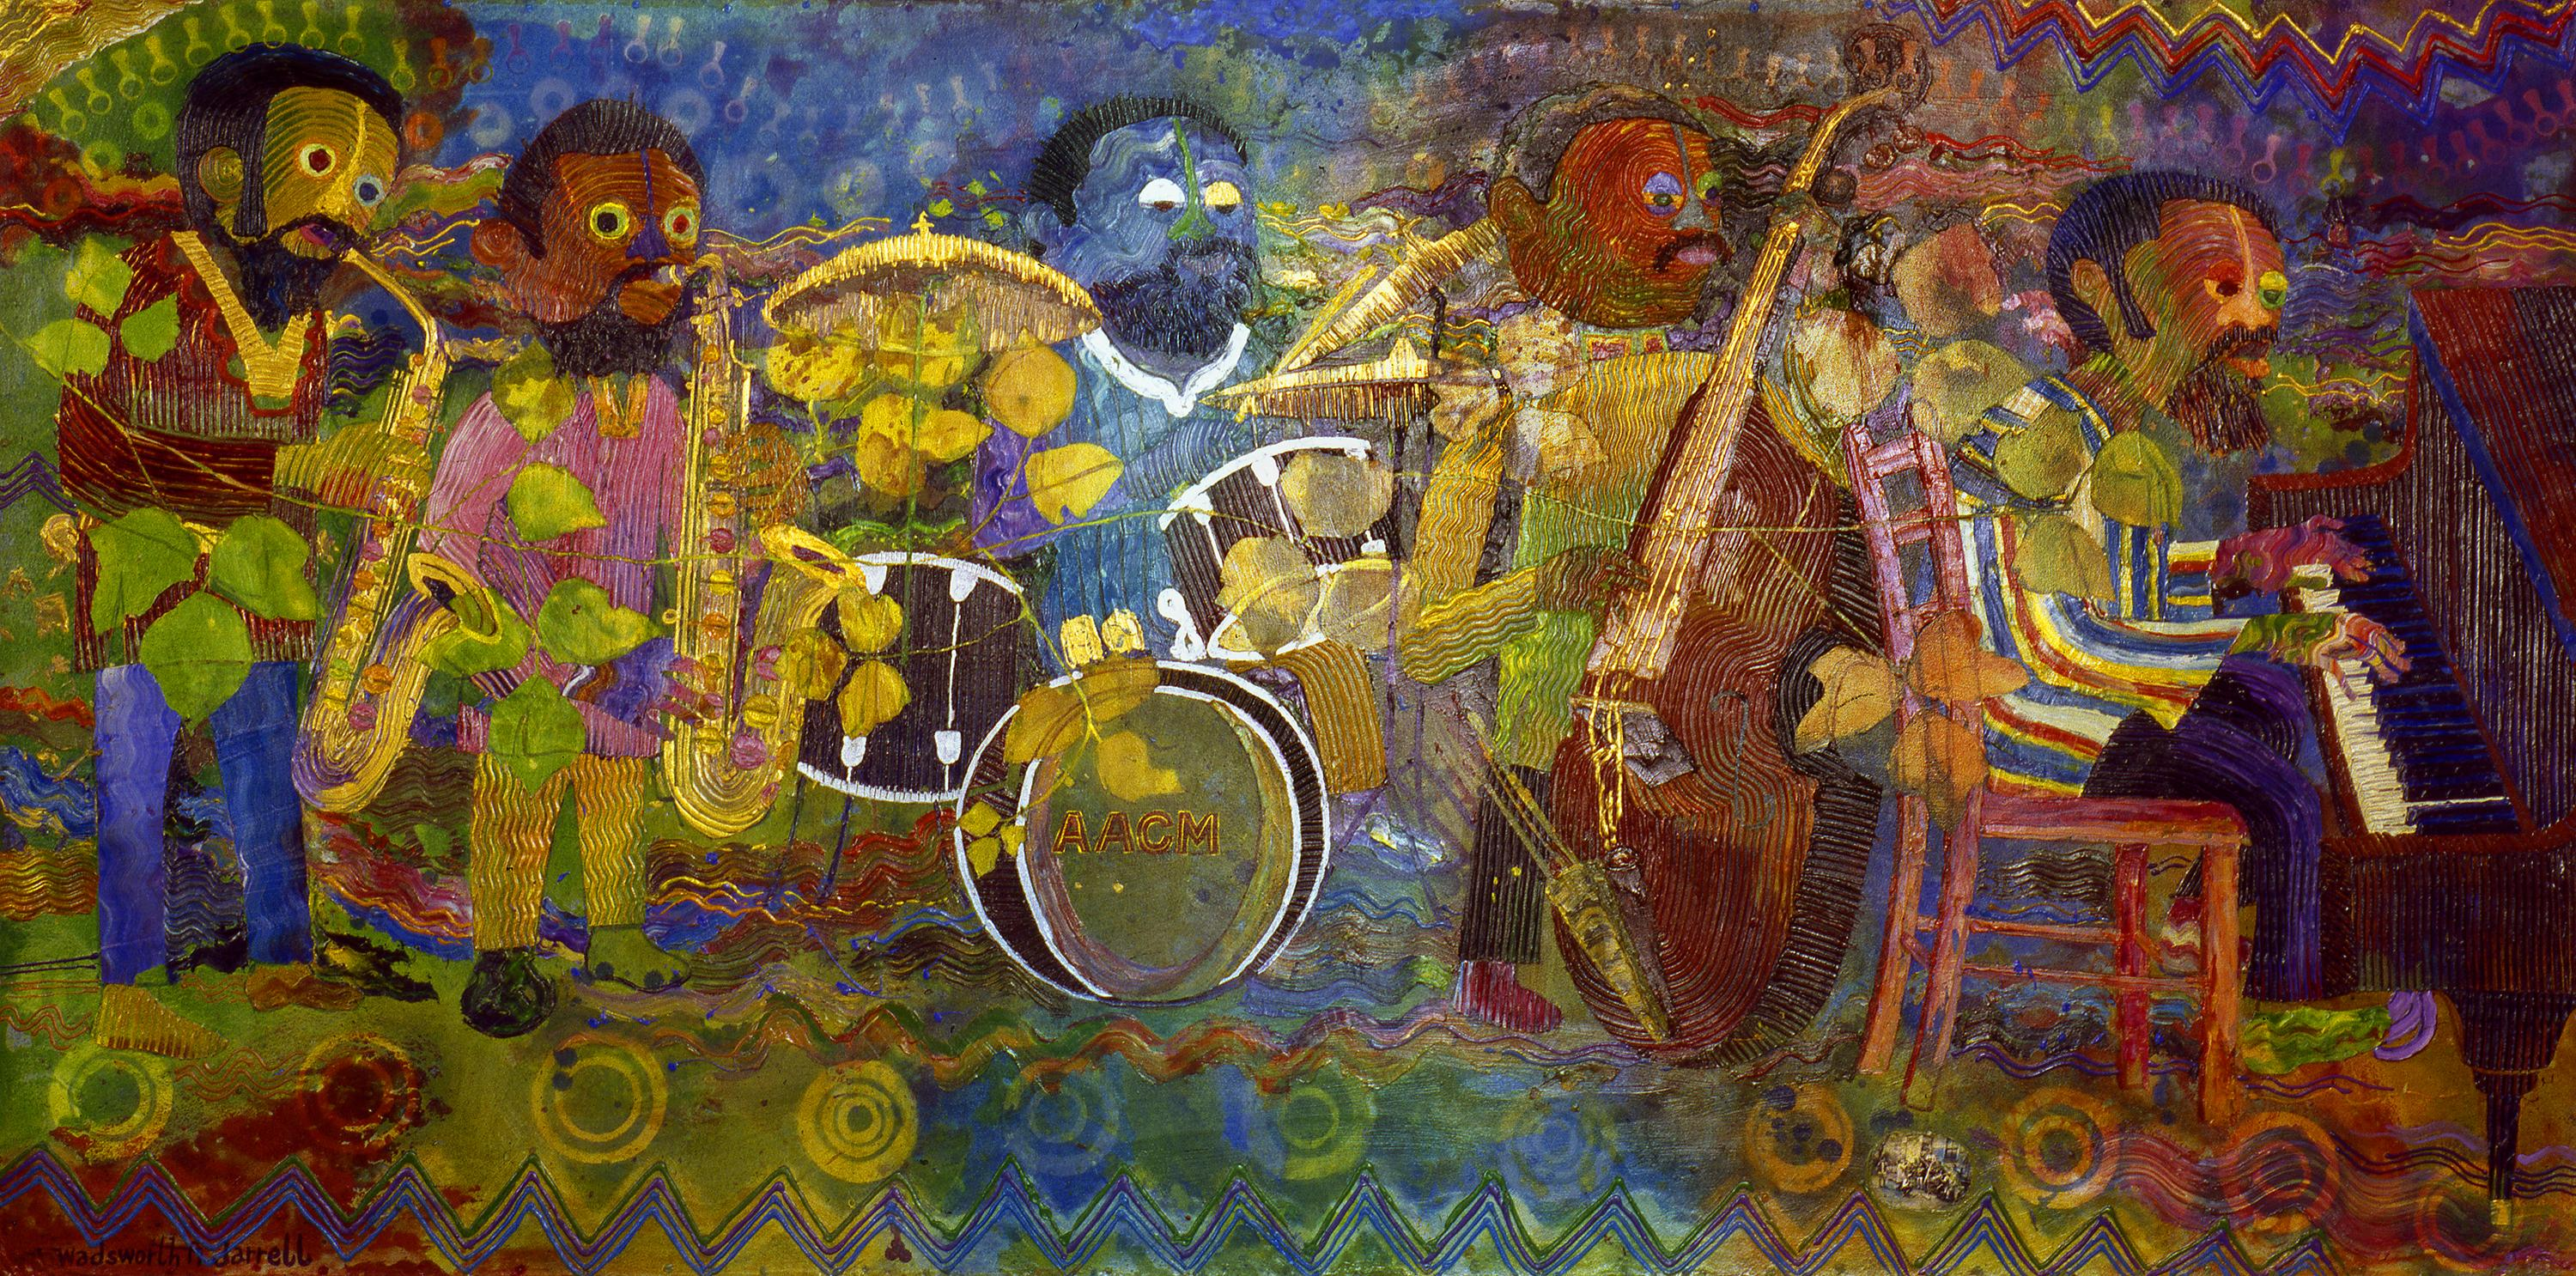 In this multicolored painting, a quintet plays two saxophones, a drum kit, a string bass, and a piano on a two-dimensional background with repeating zigzags and circular targets.